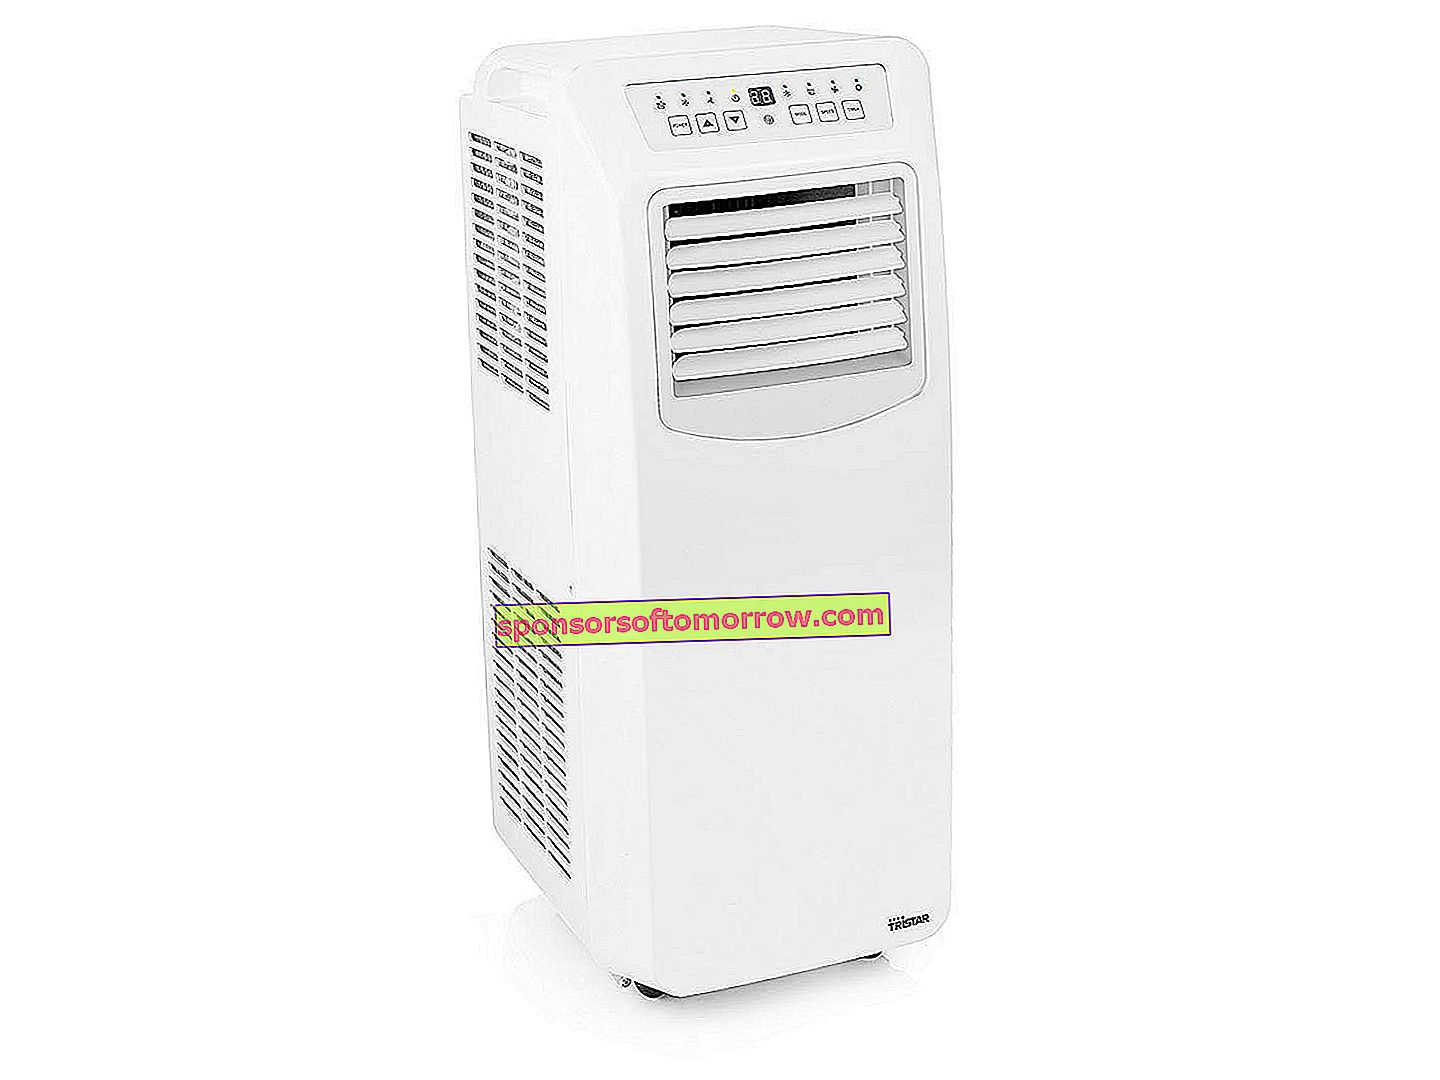 Tristar AC-5562 air conditioner with heater